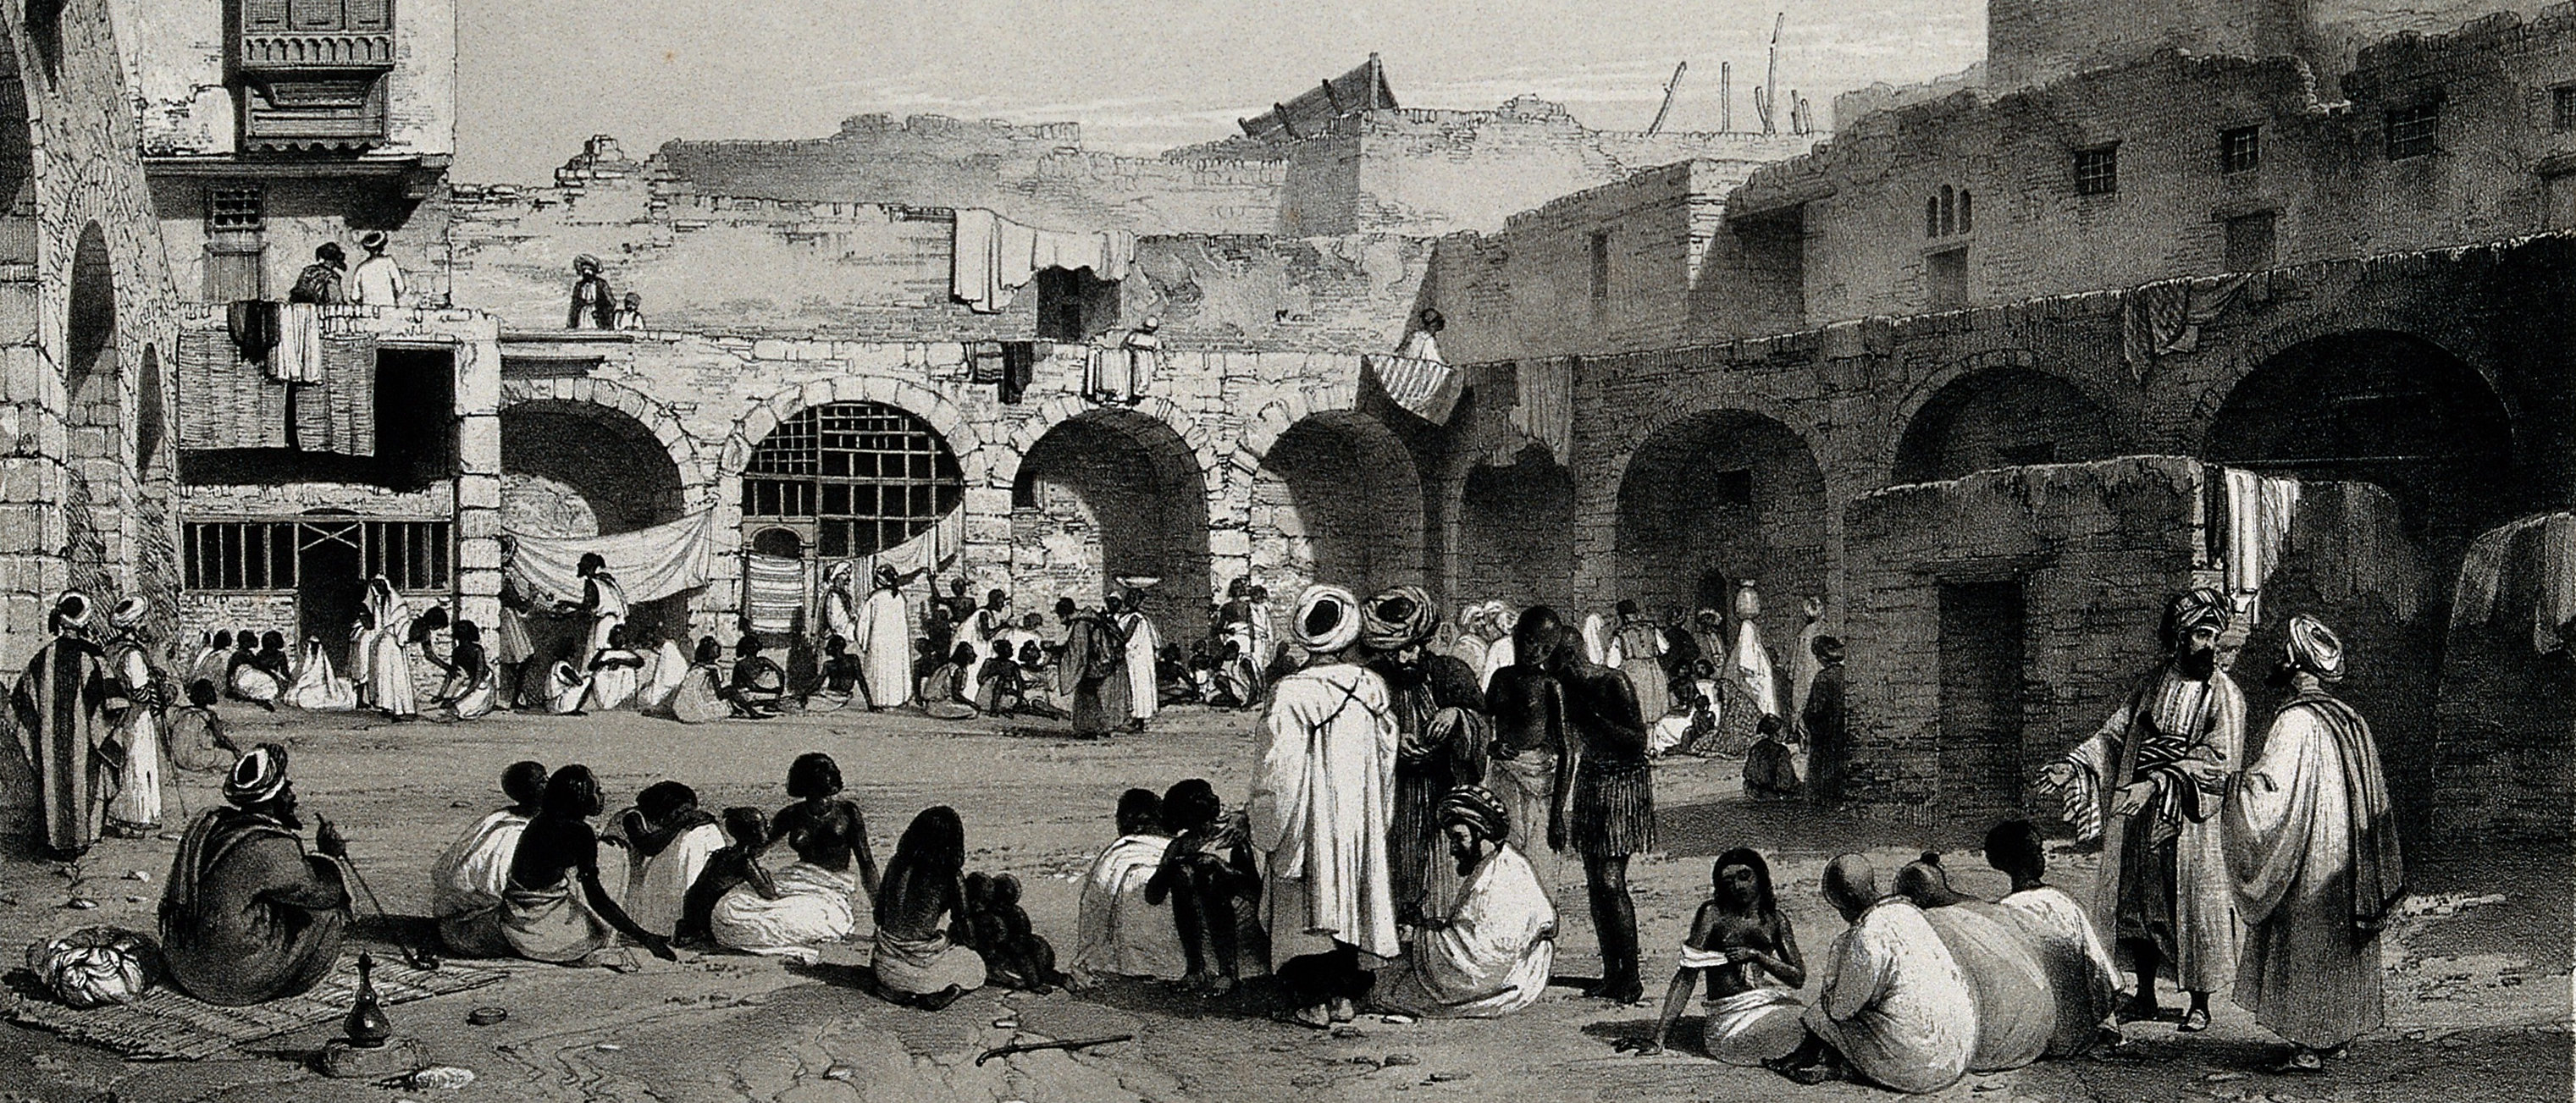 The_slave_market_in_Cairo._Wellcome_V0050649 (detail)